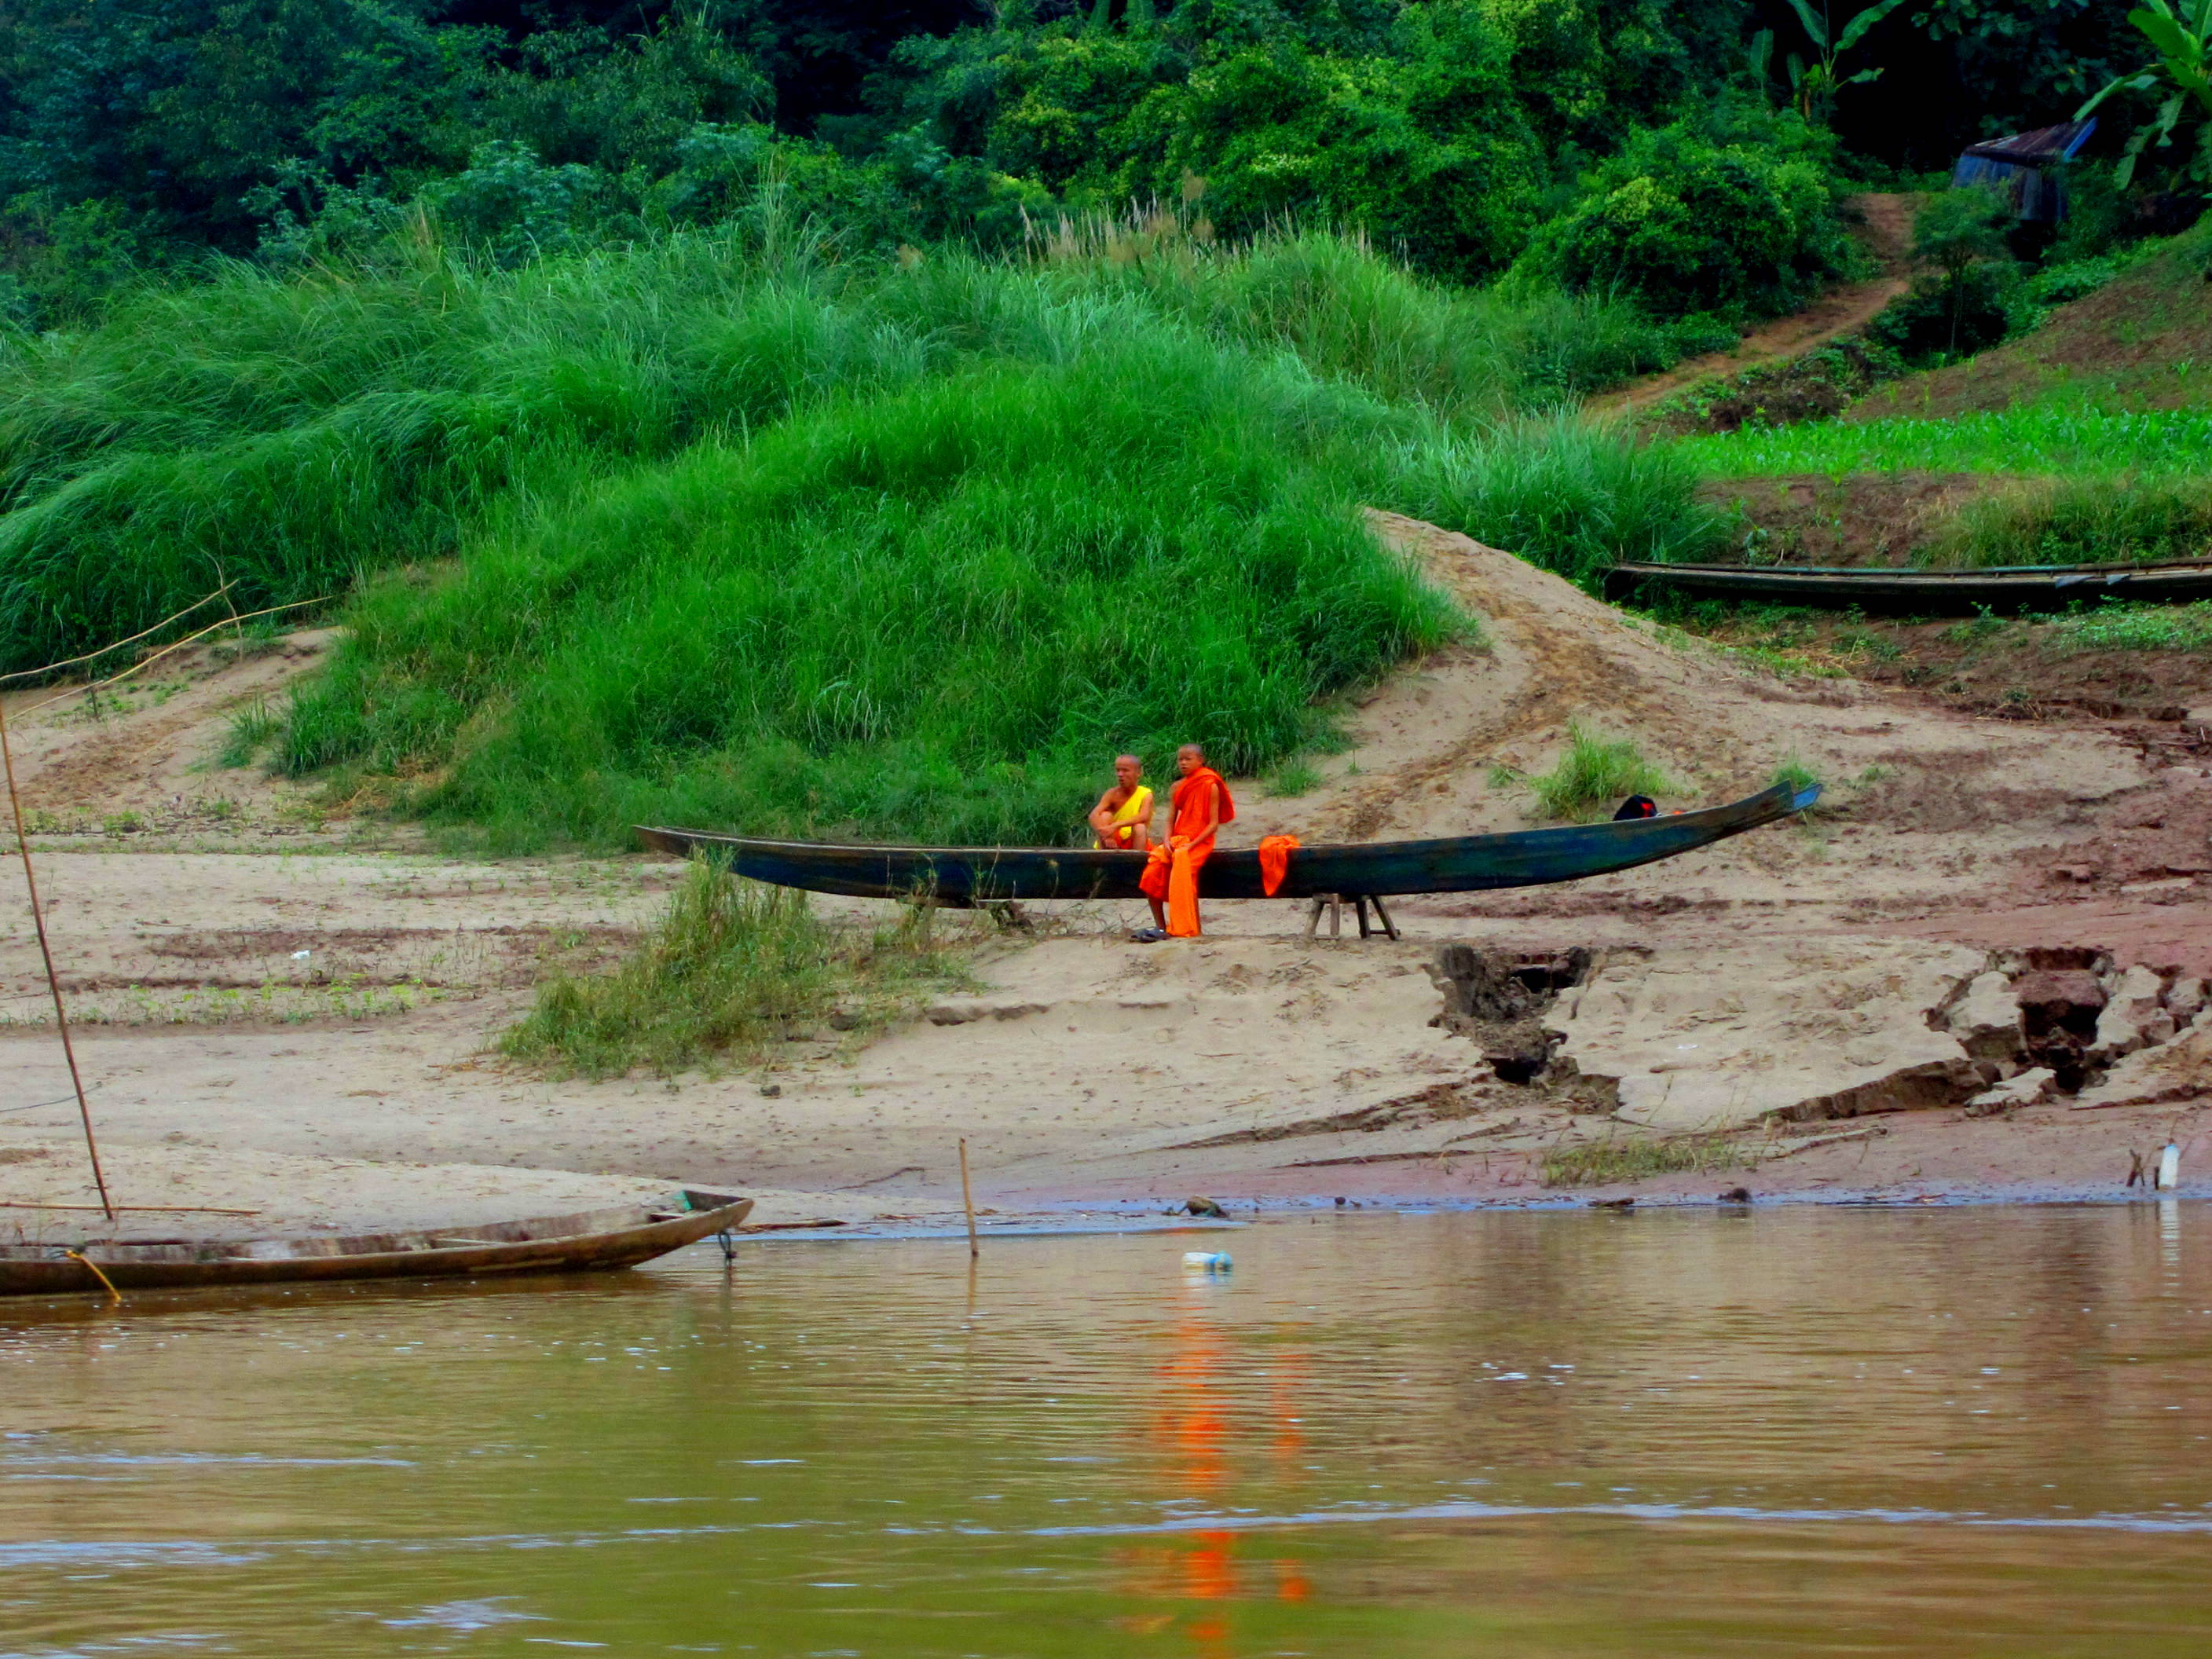 Monks on the riverbank. Taking the riverboat from Laos back to Thailand